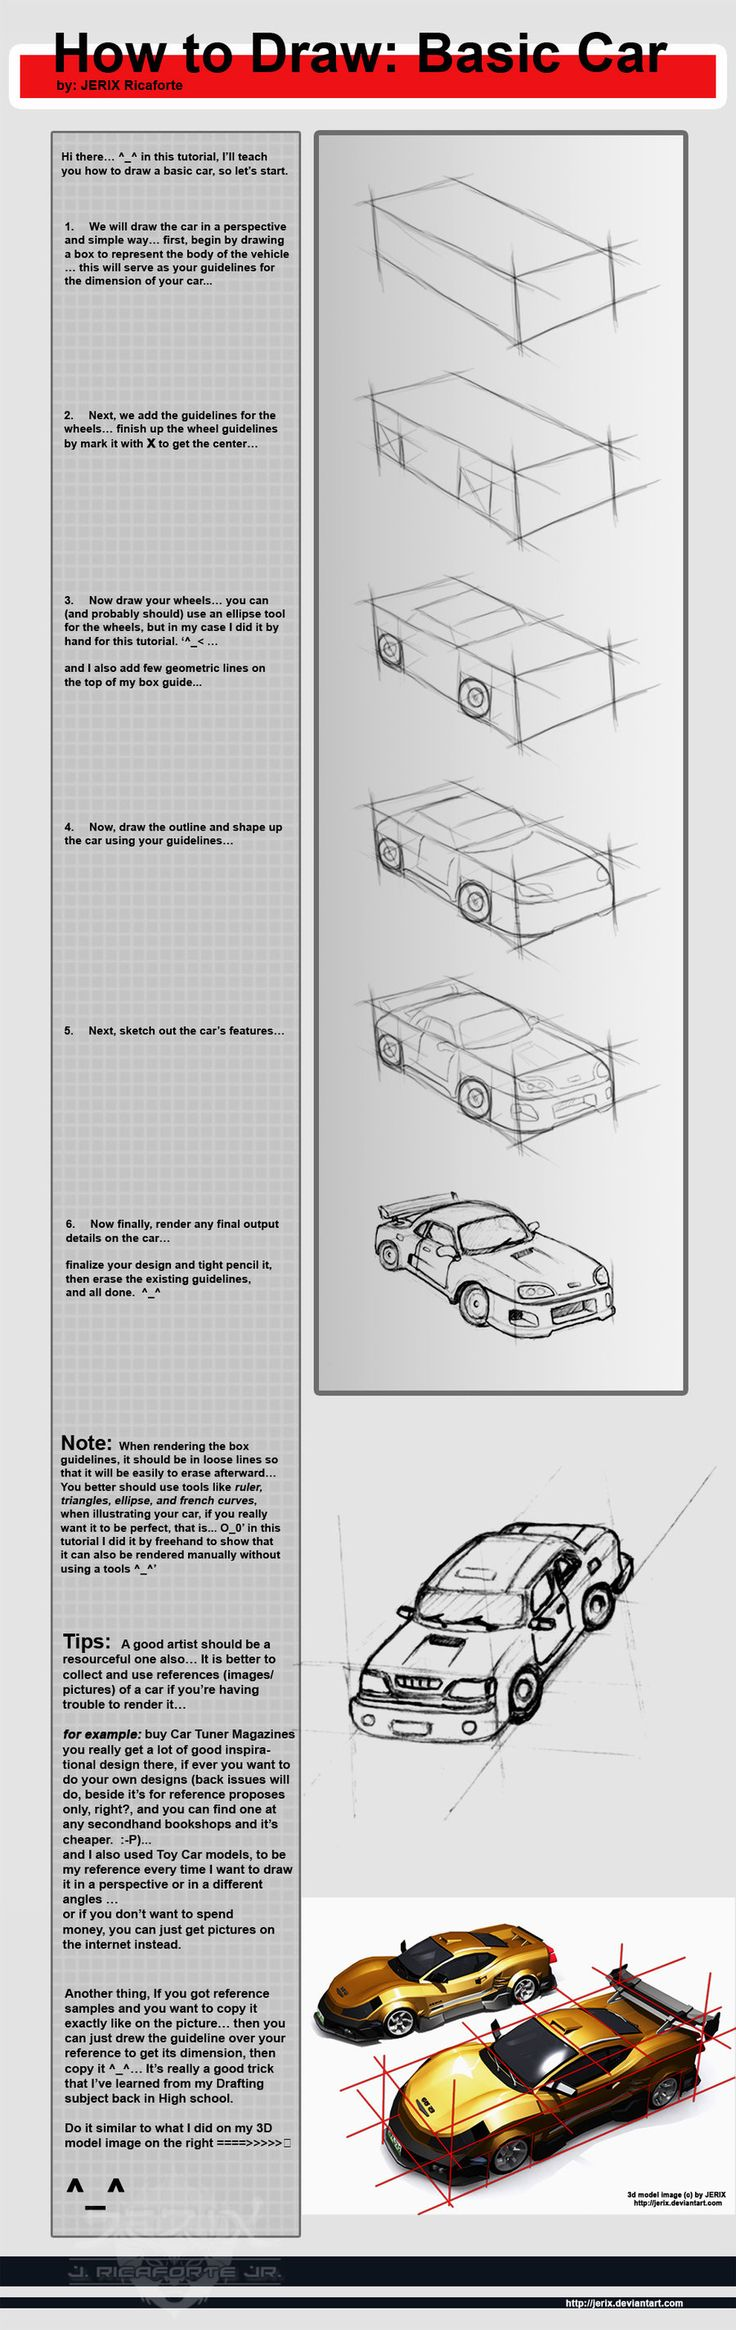 What are some basic things to know about mechanical drawing?